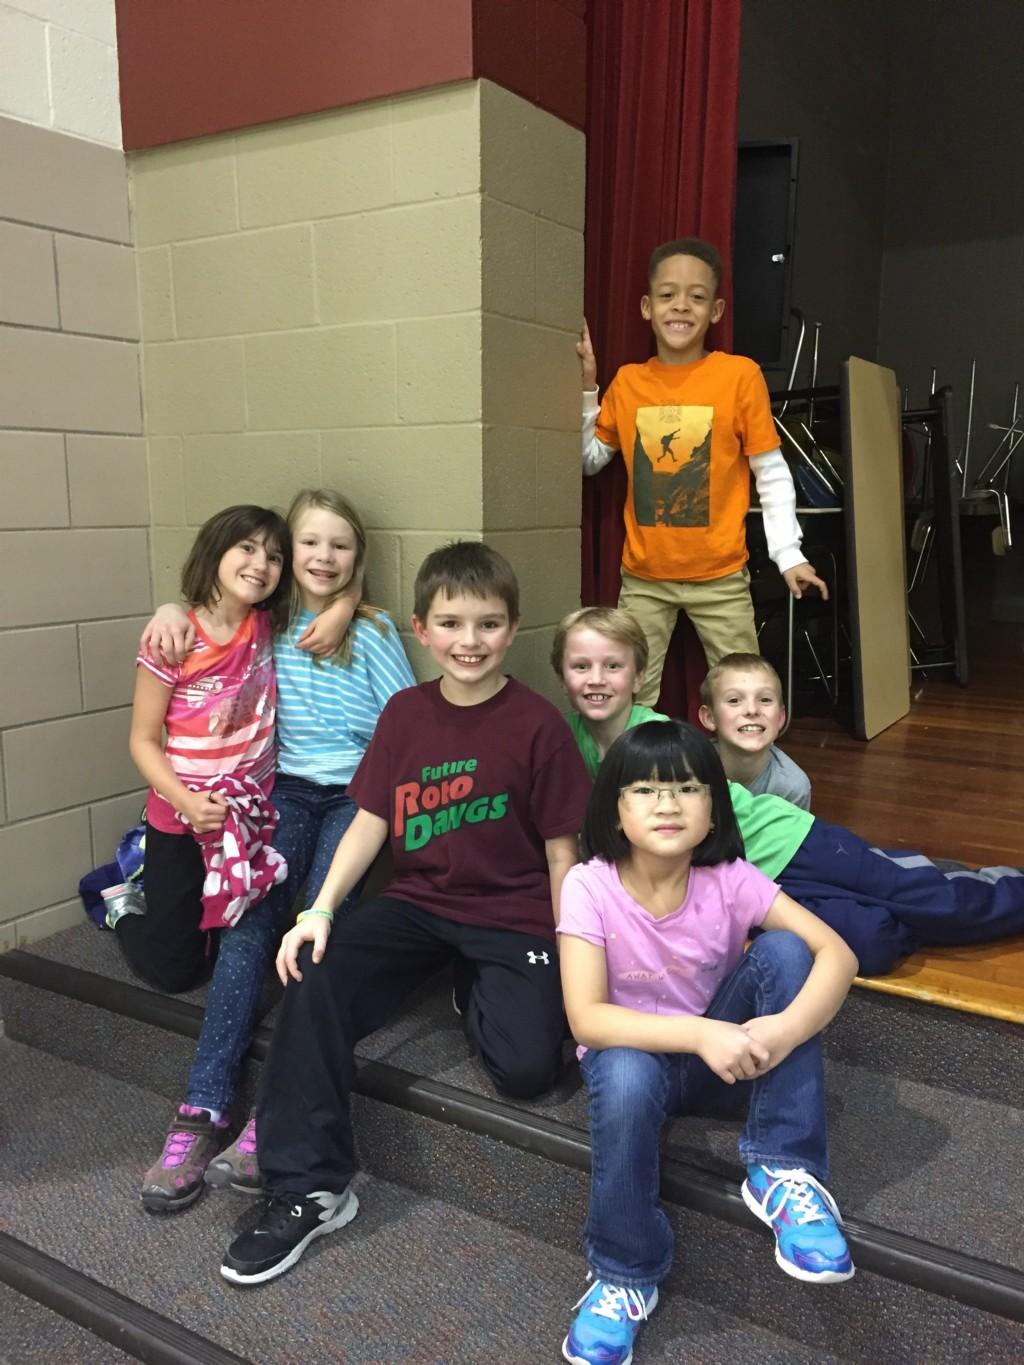 students pose for camera on steps to stage in gym